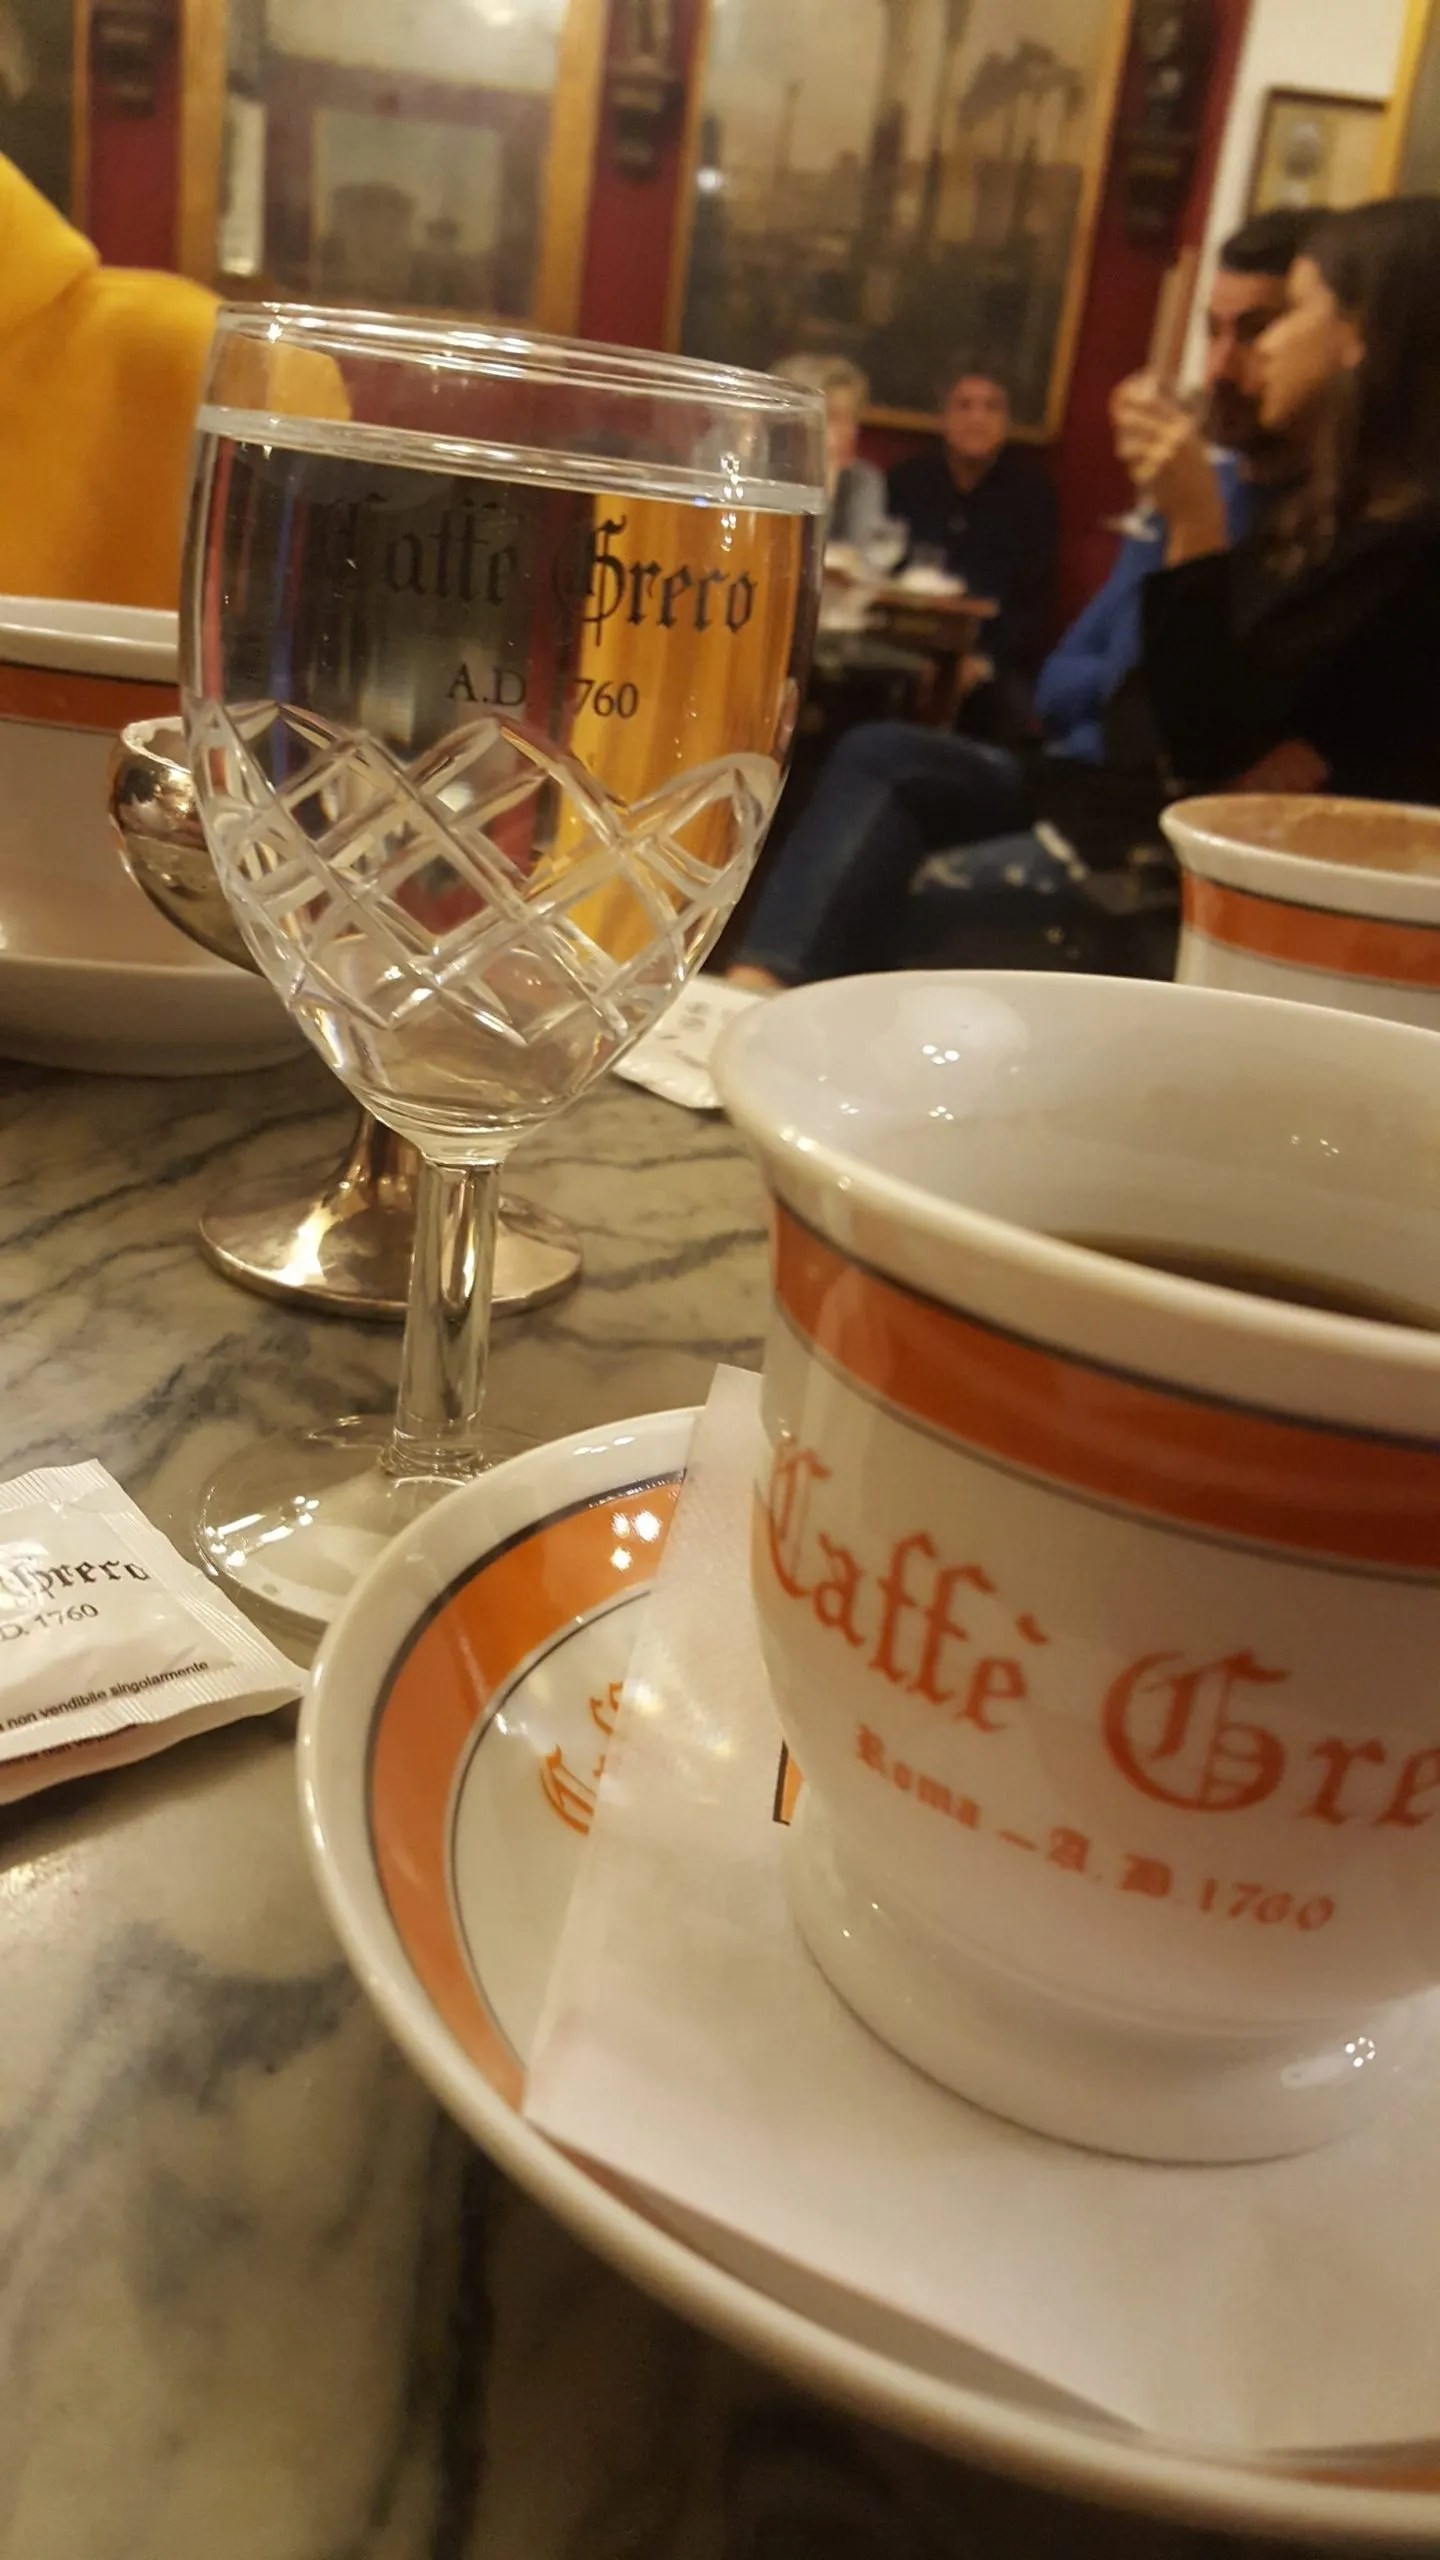 Caffe Greco cup